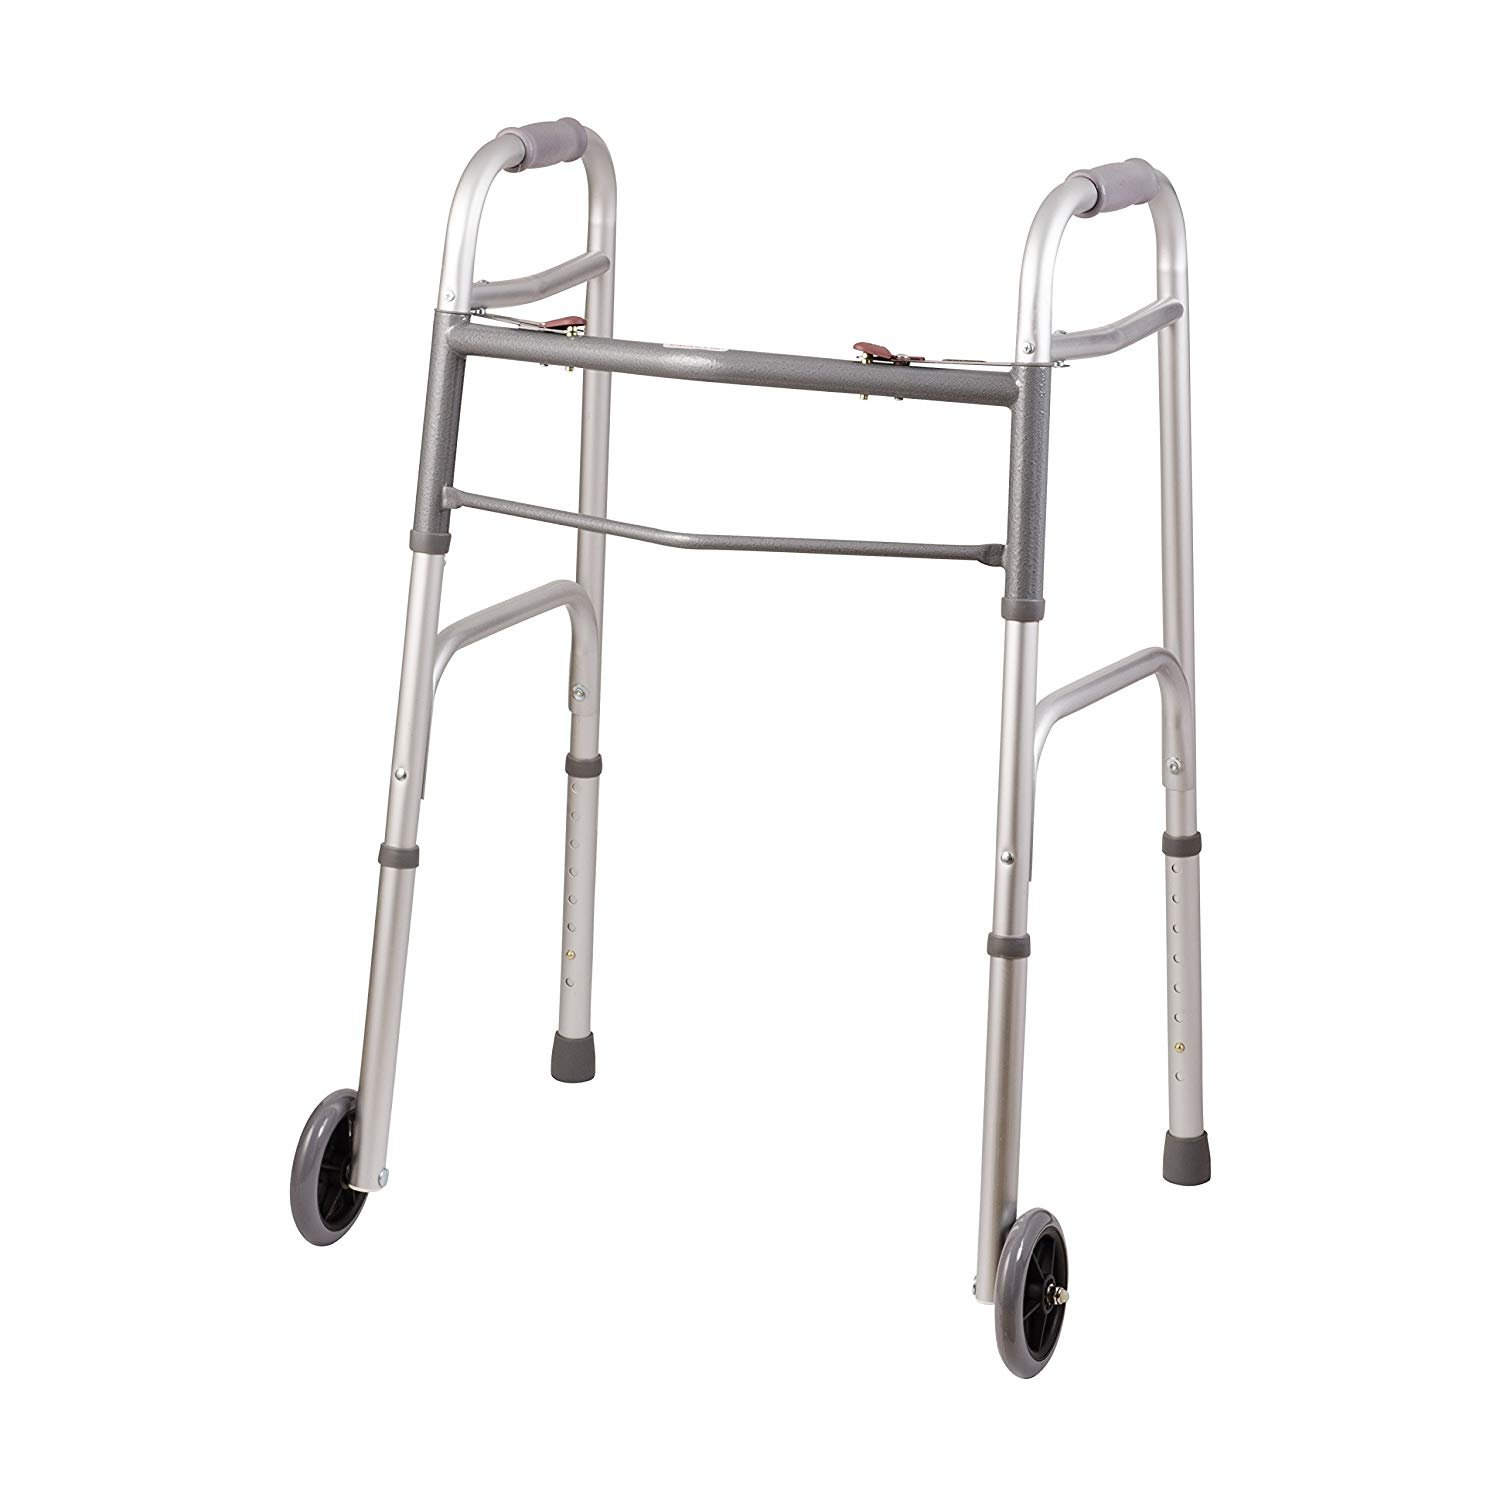 Buy Onile Trigger Release Walker With 5 Inch Fixed Wheels